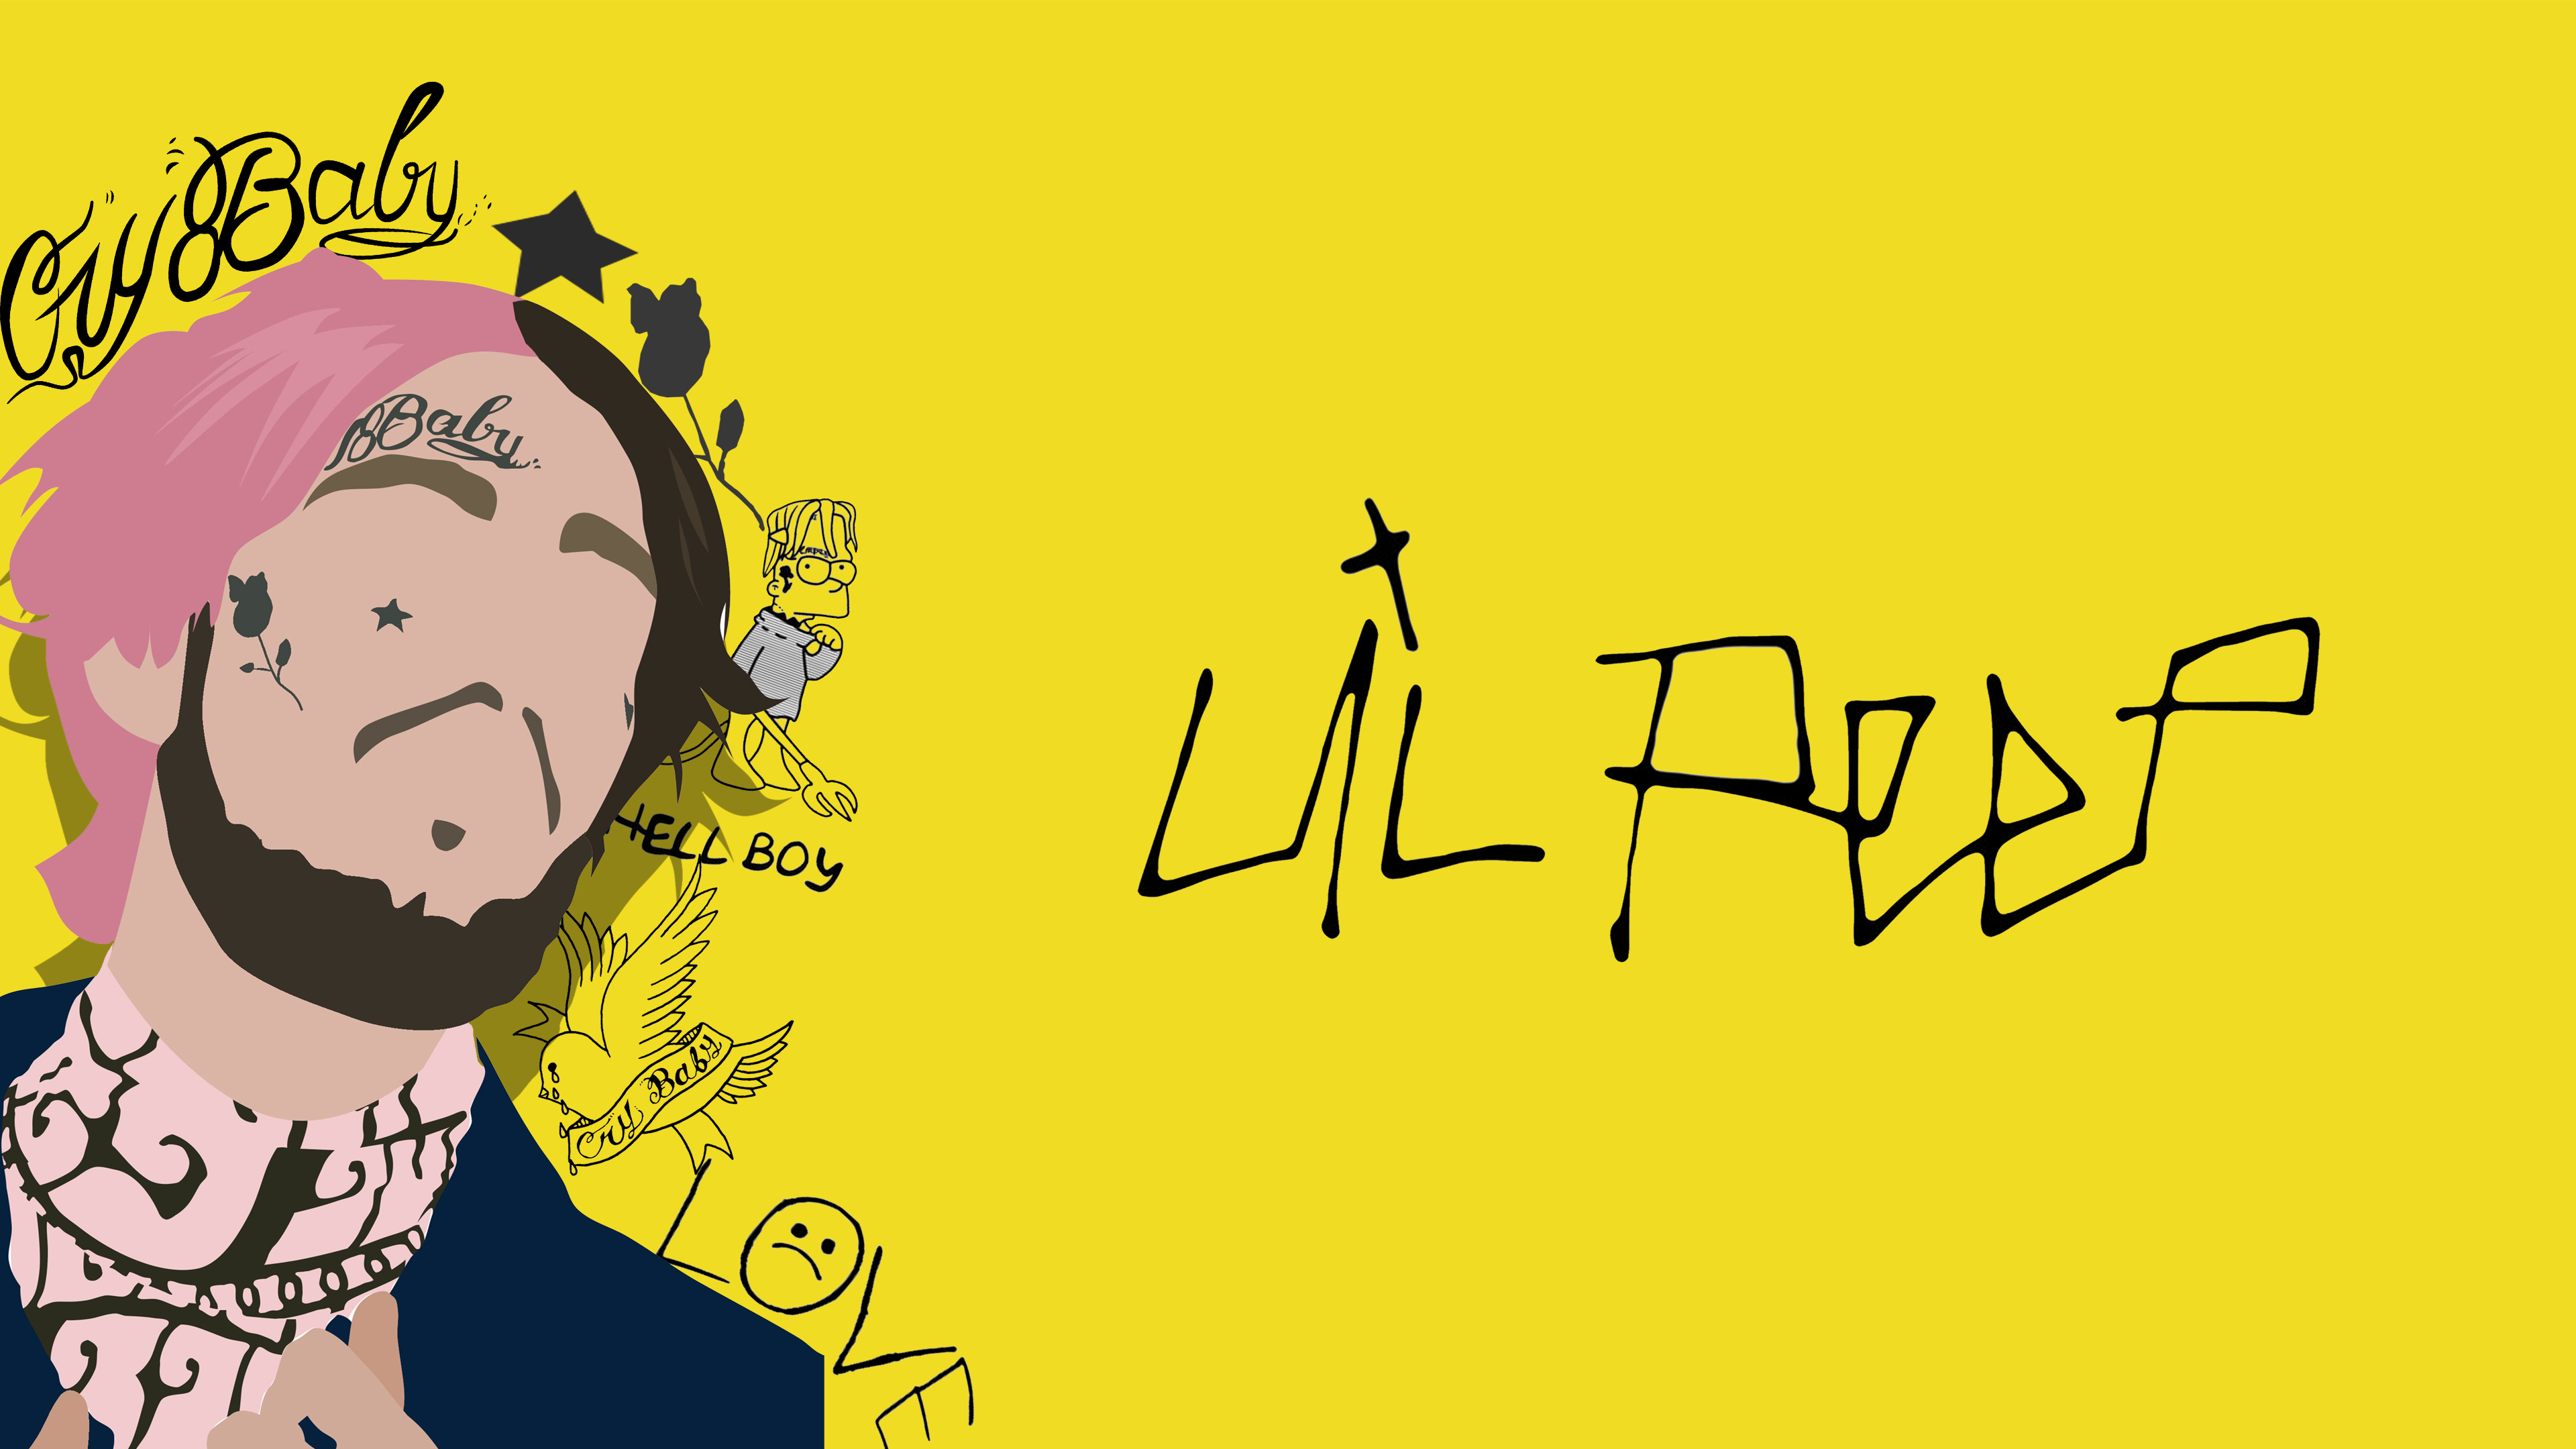 Lil Peep Love Computer Wallpapers - Wallpaper Cave